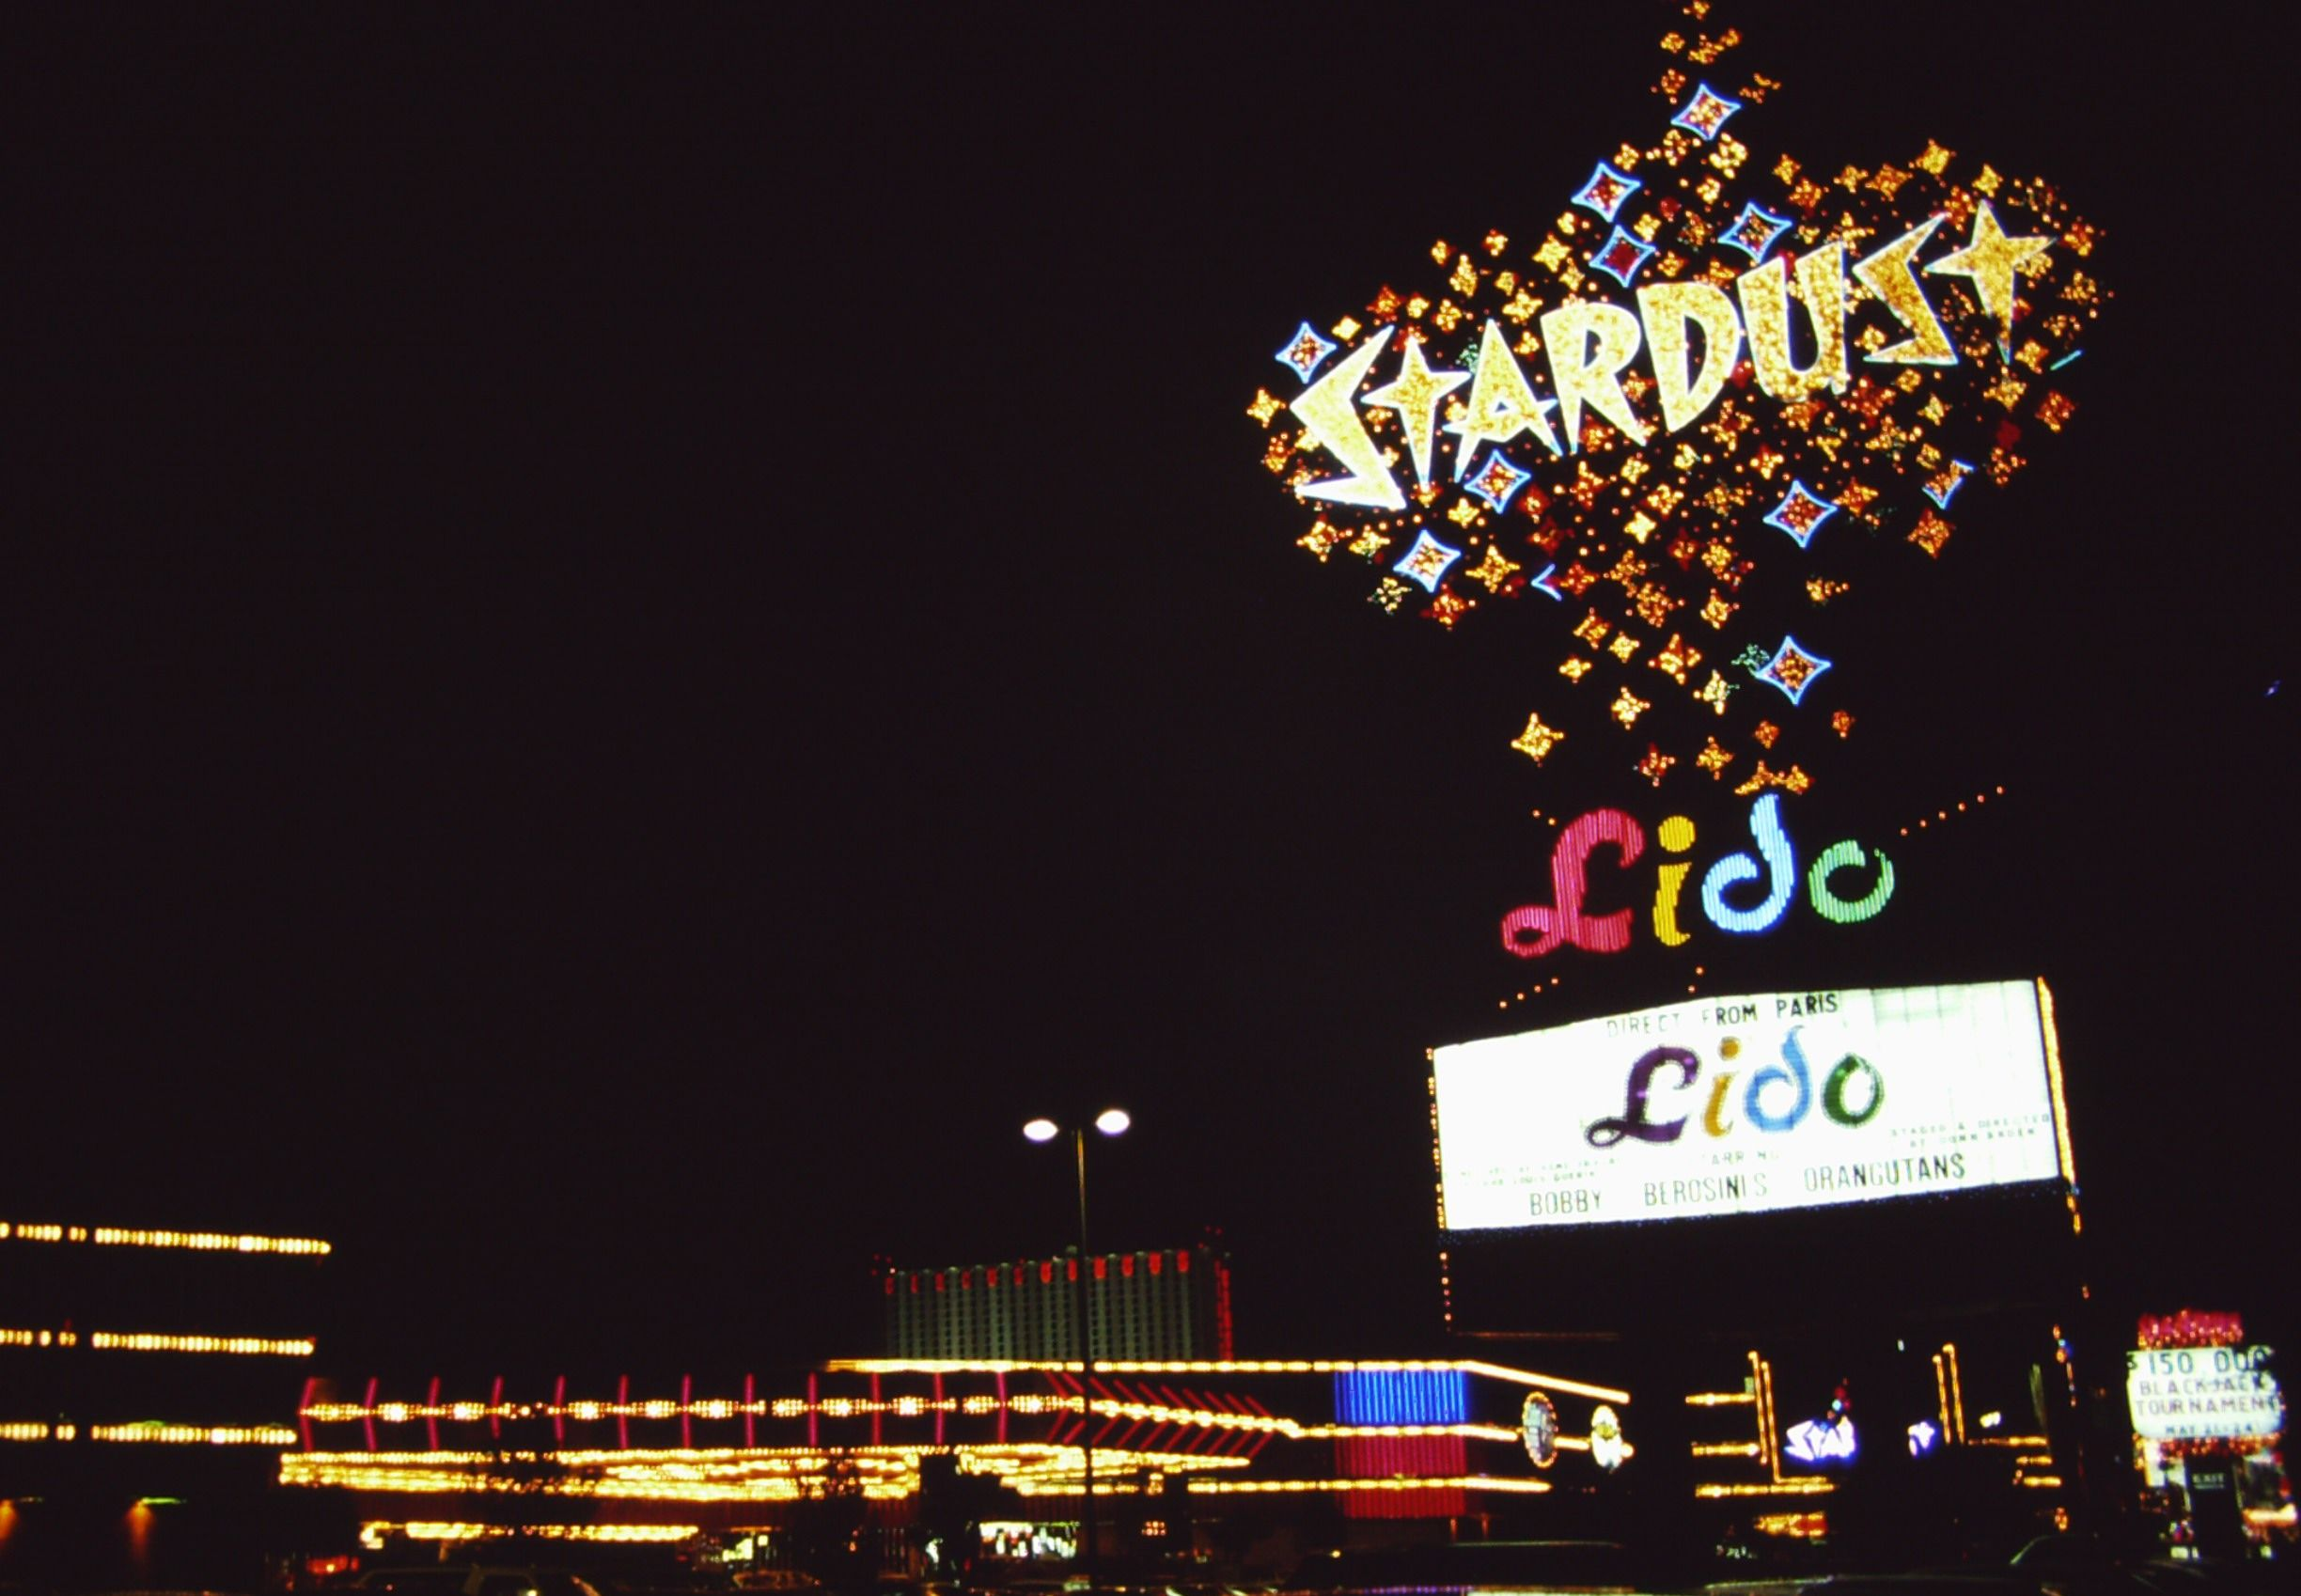 The famous Stardust sign before it went to the graveyard.